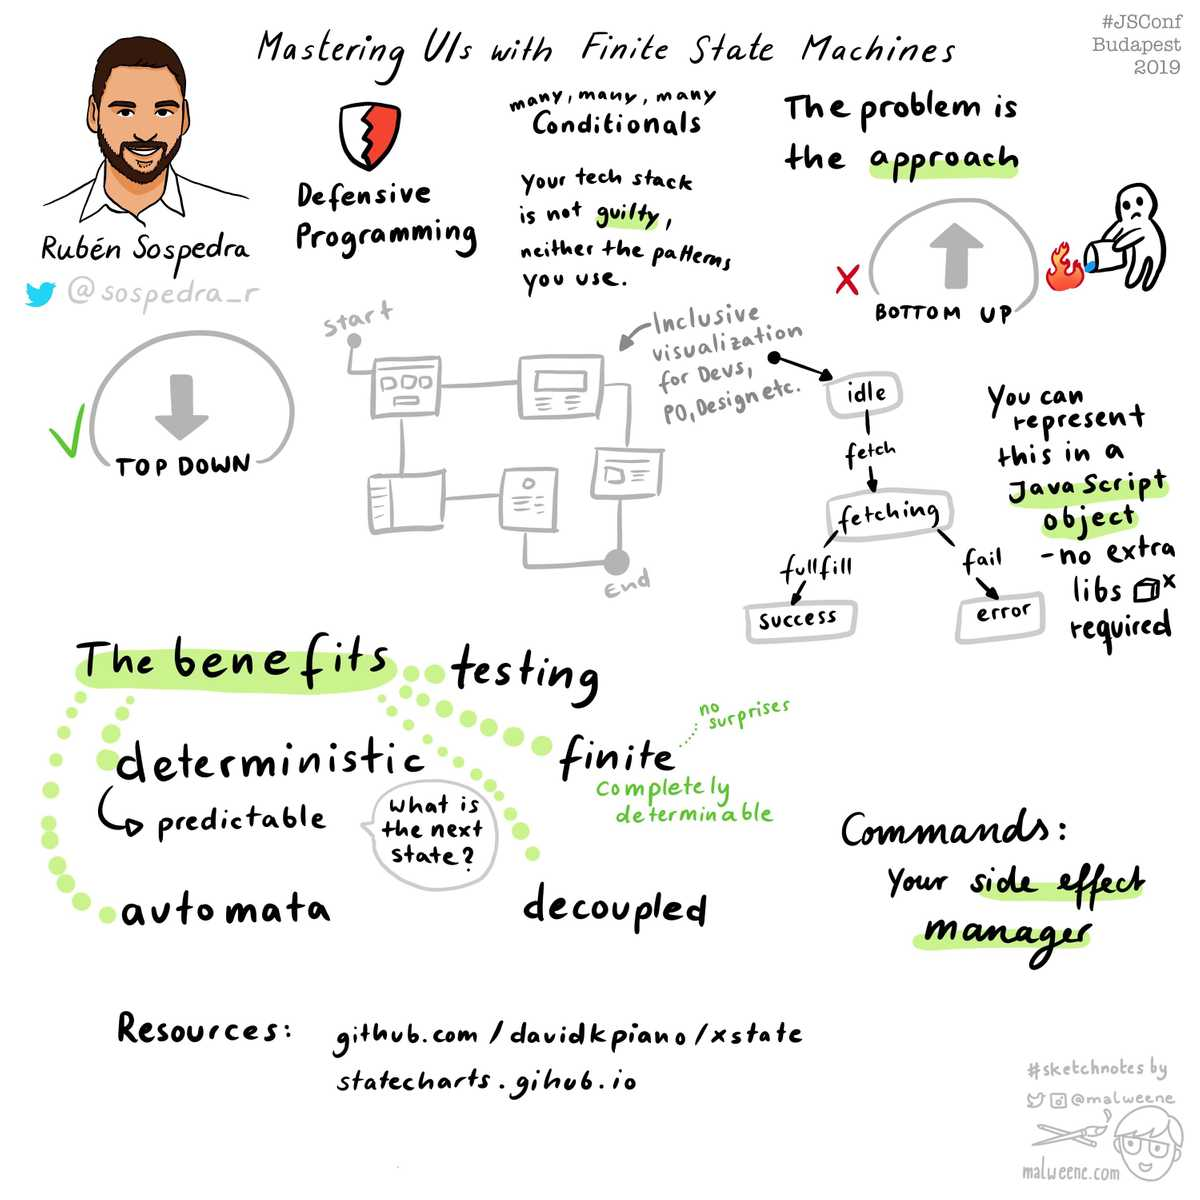 Hand-drawn sketch notes summarizing the talk of Rubén Sospedra